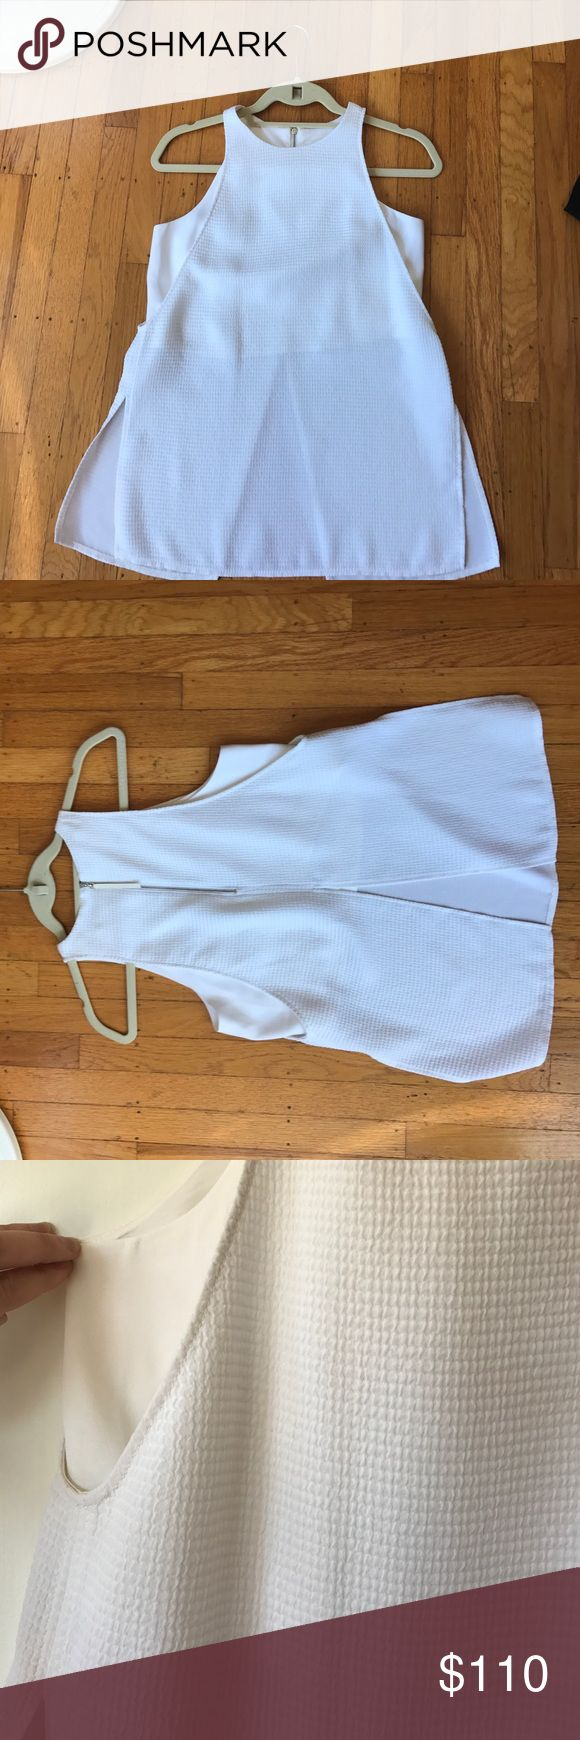 Helmat Lang blouse Super cute white sleeveless blouse. Only worn a few times. Helmut Lang Tops Blouses